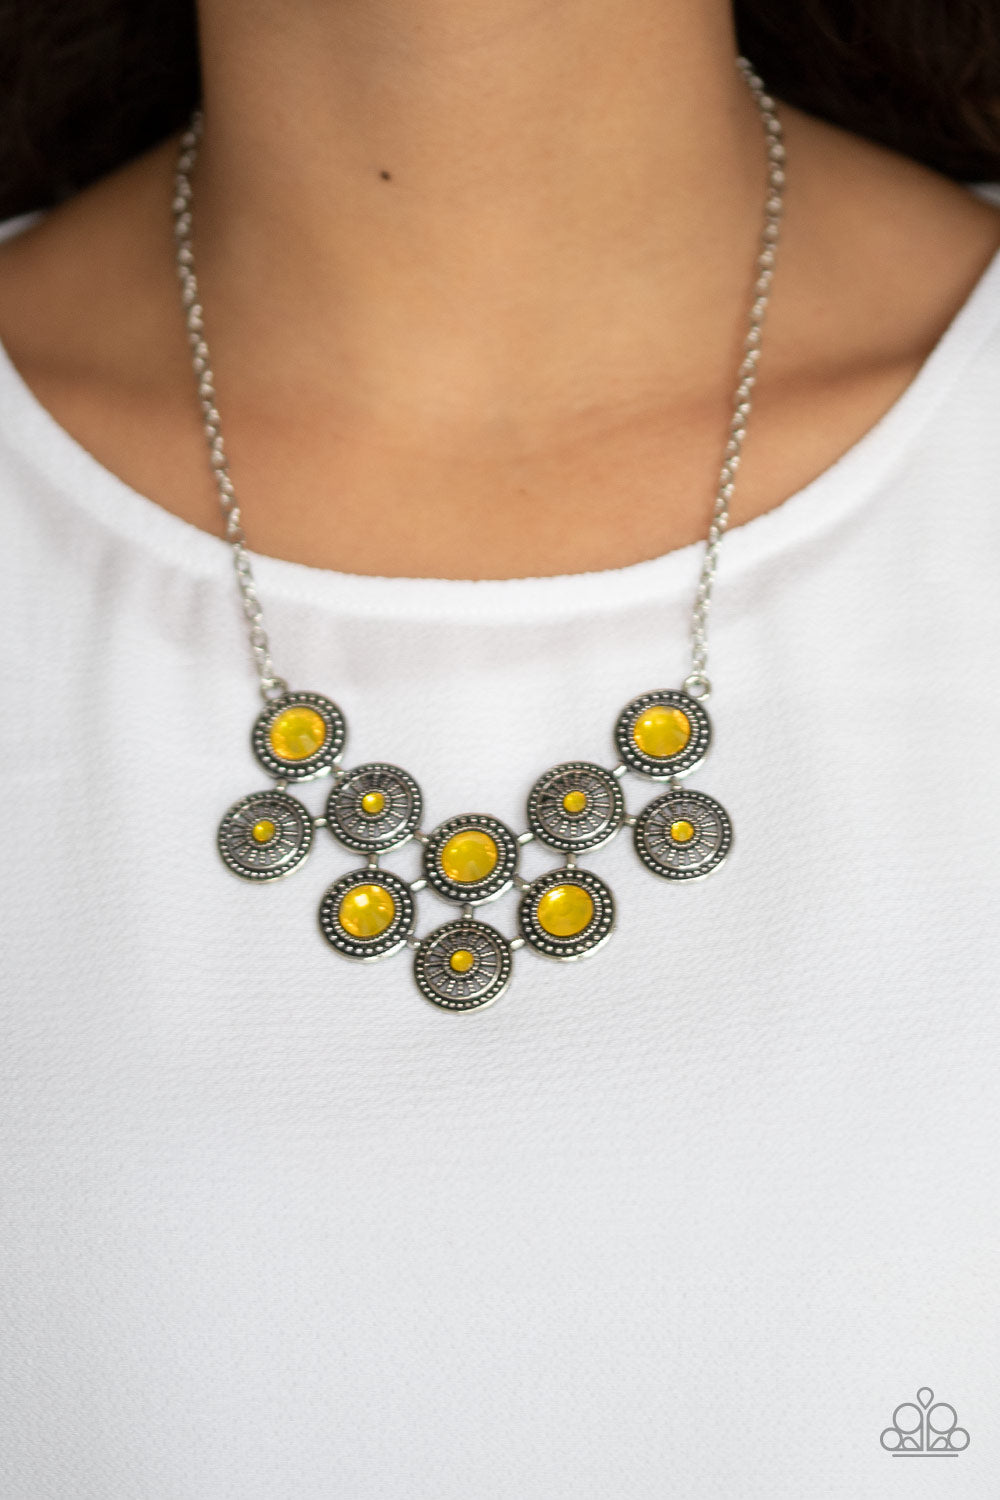 Paparazzi What's Your Star Sign Yellow Necklace